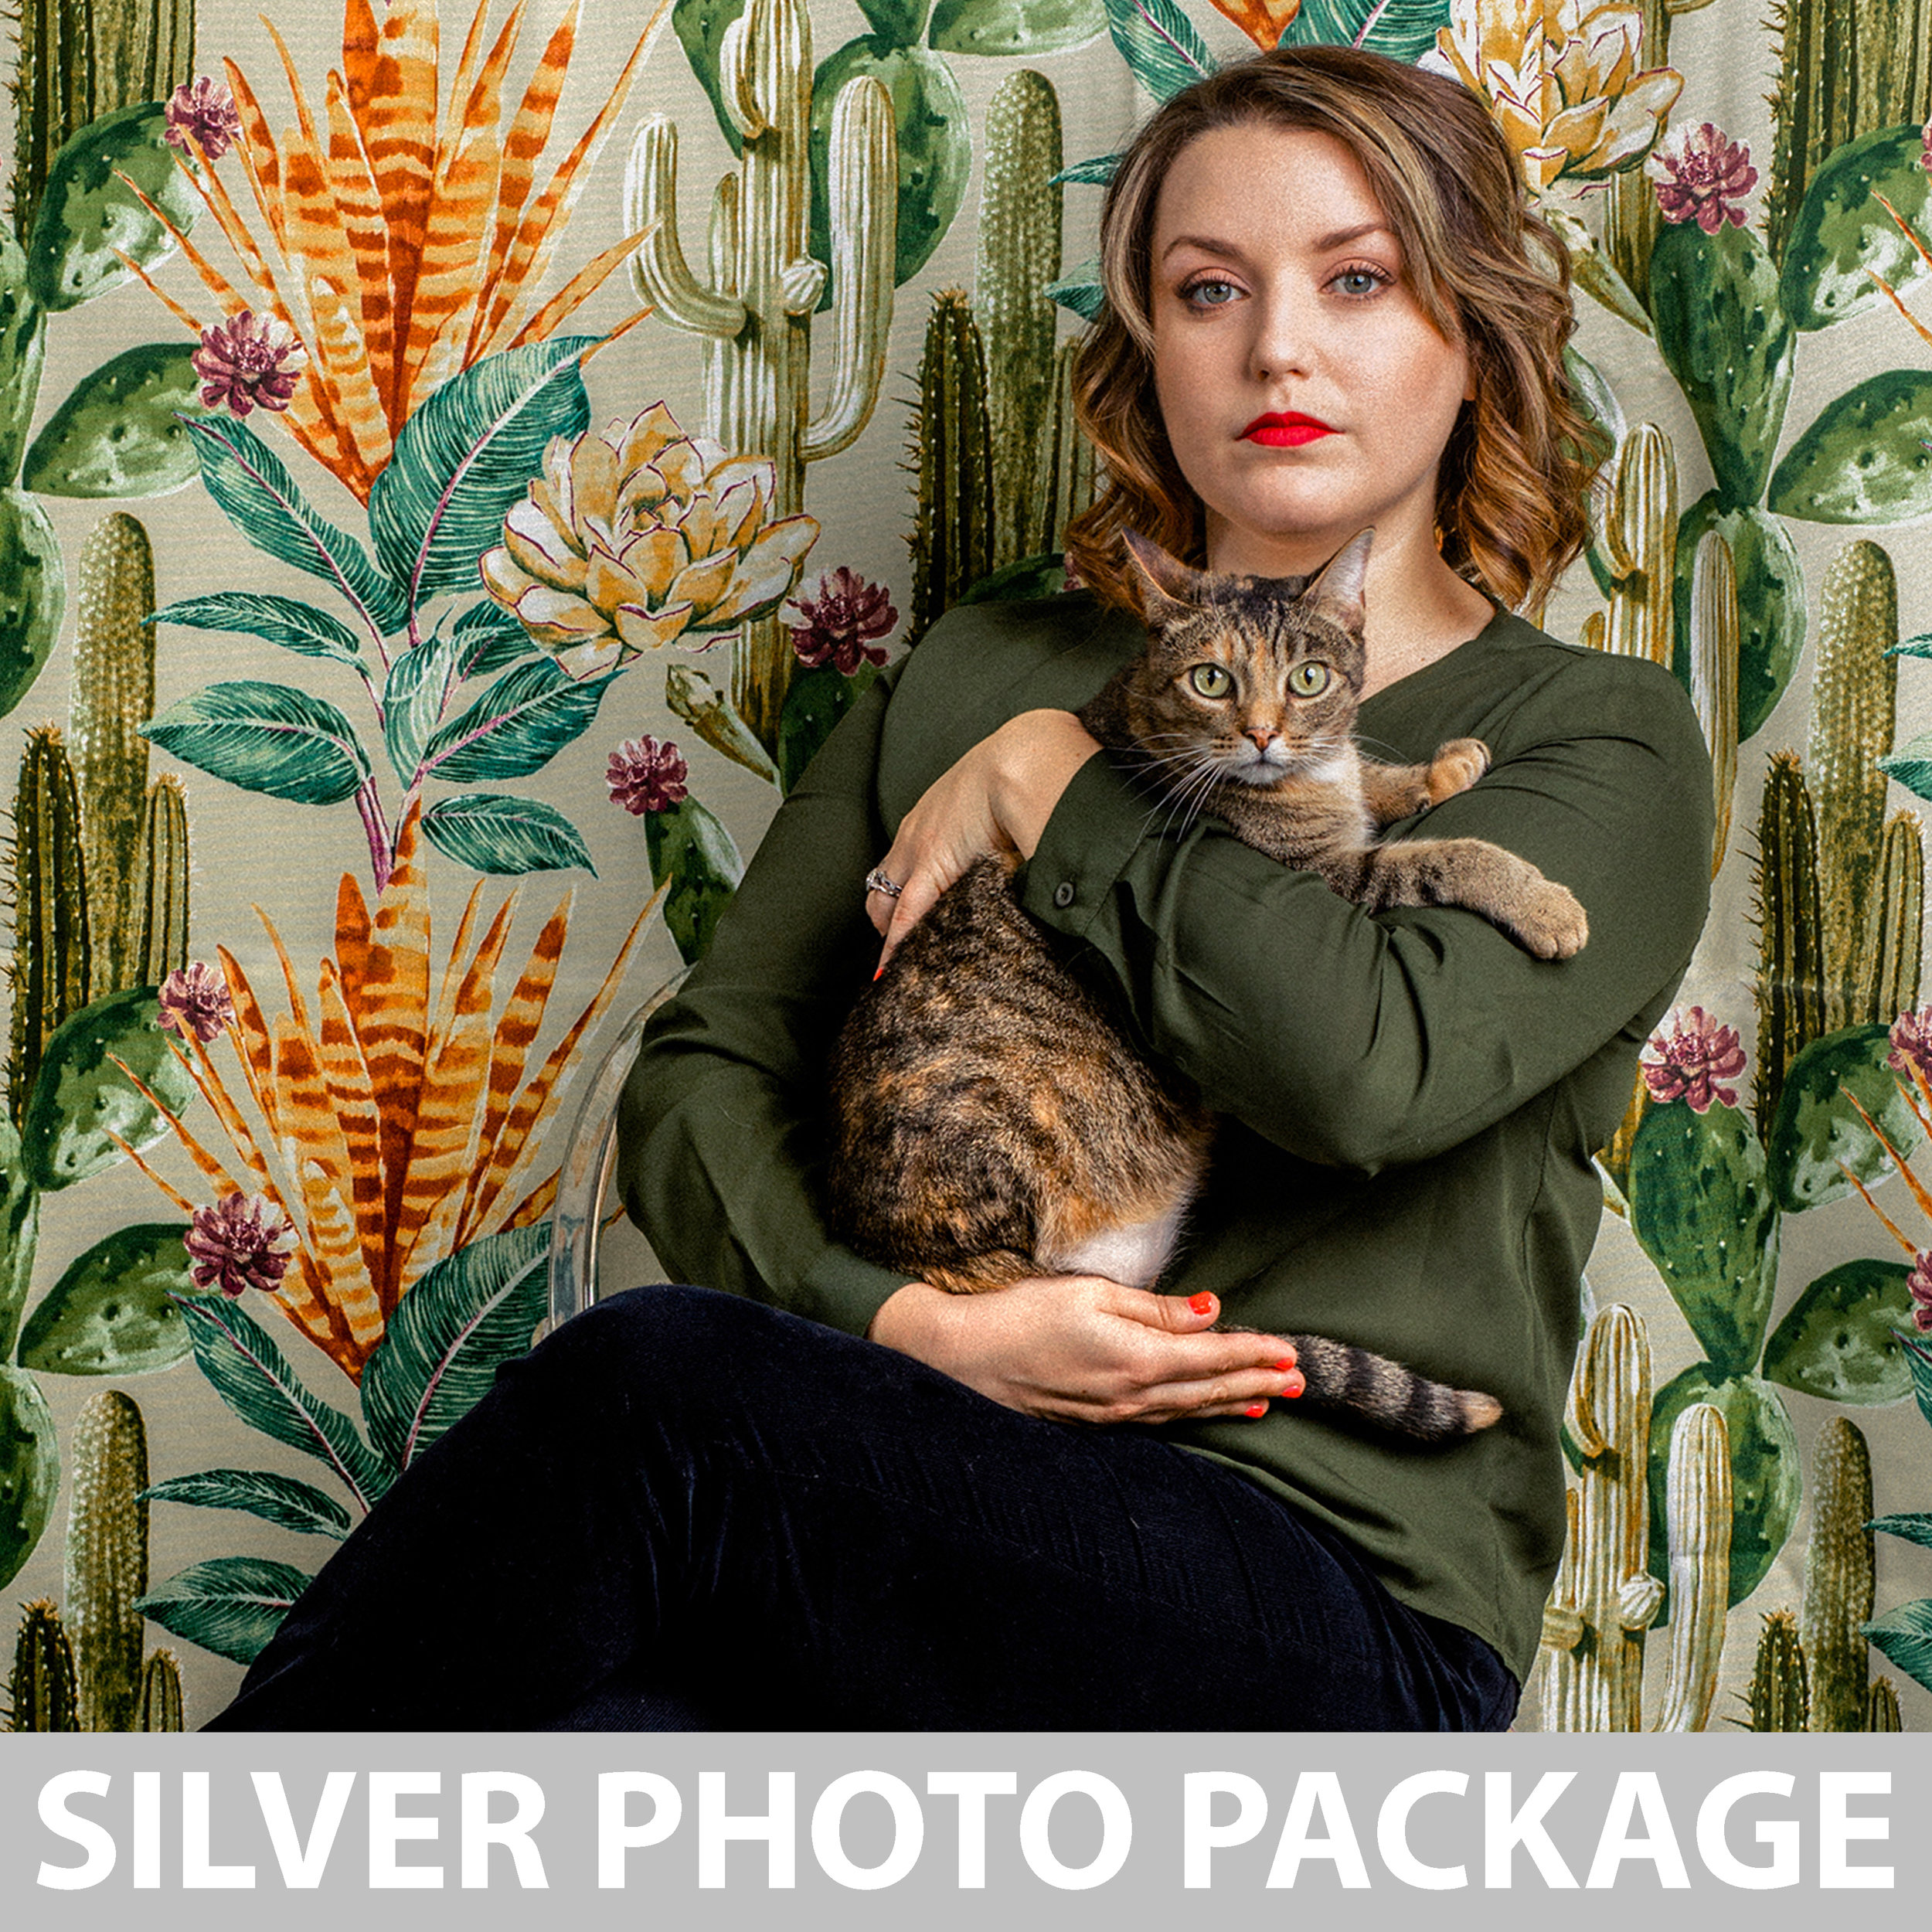 $125 - 30 minute studio session with custom backdrop, in a professional photo studio1 person + 1-2 pets3-5+ professionally edited & retouched photos